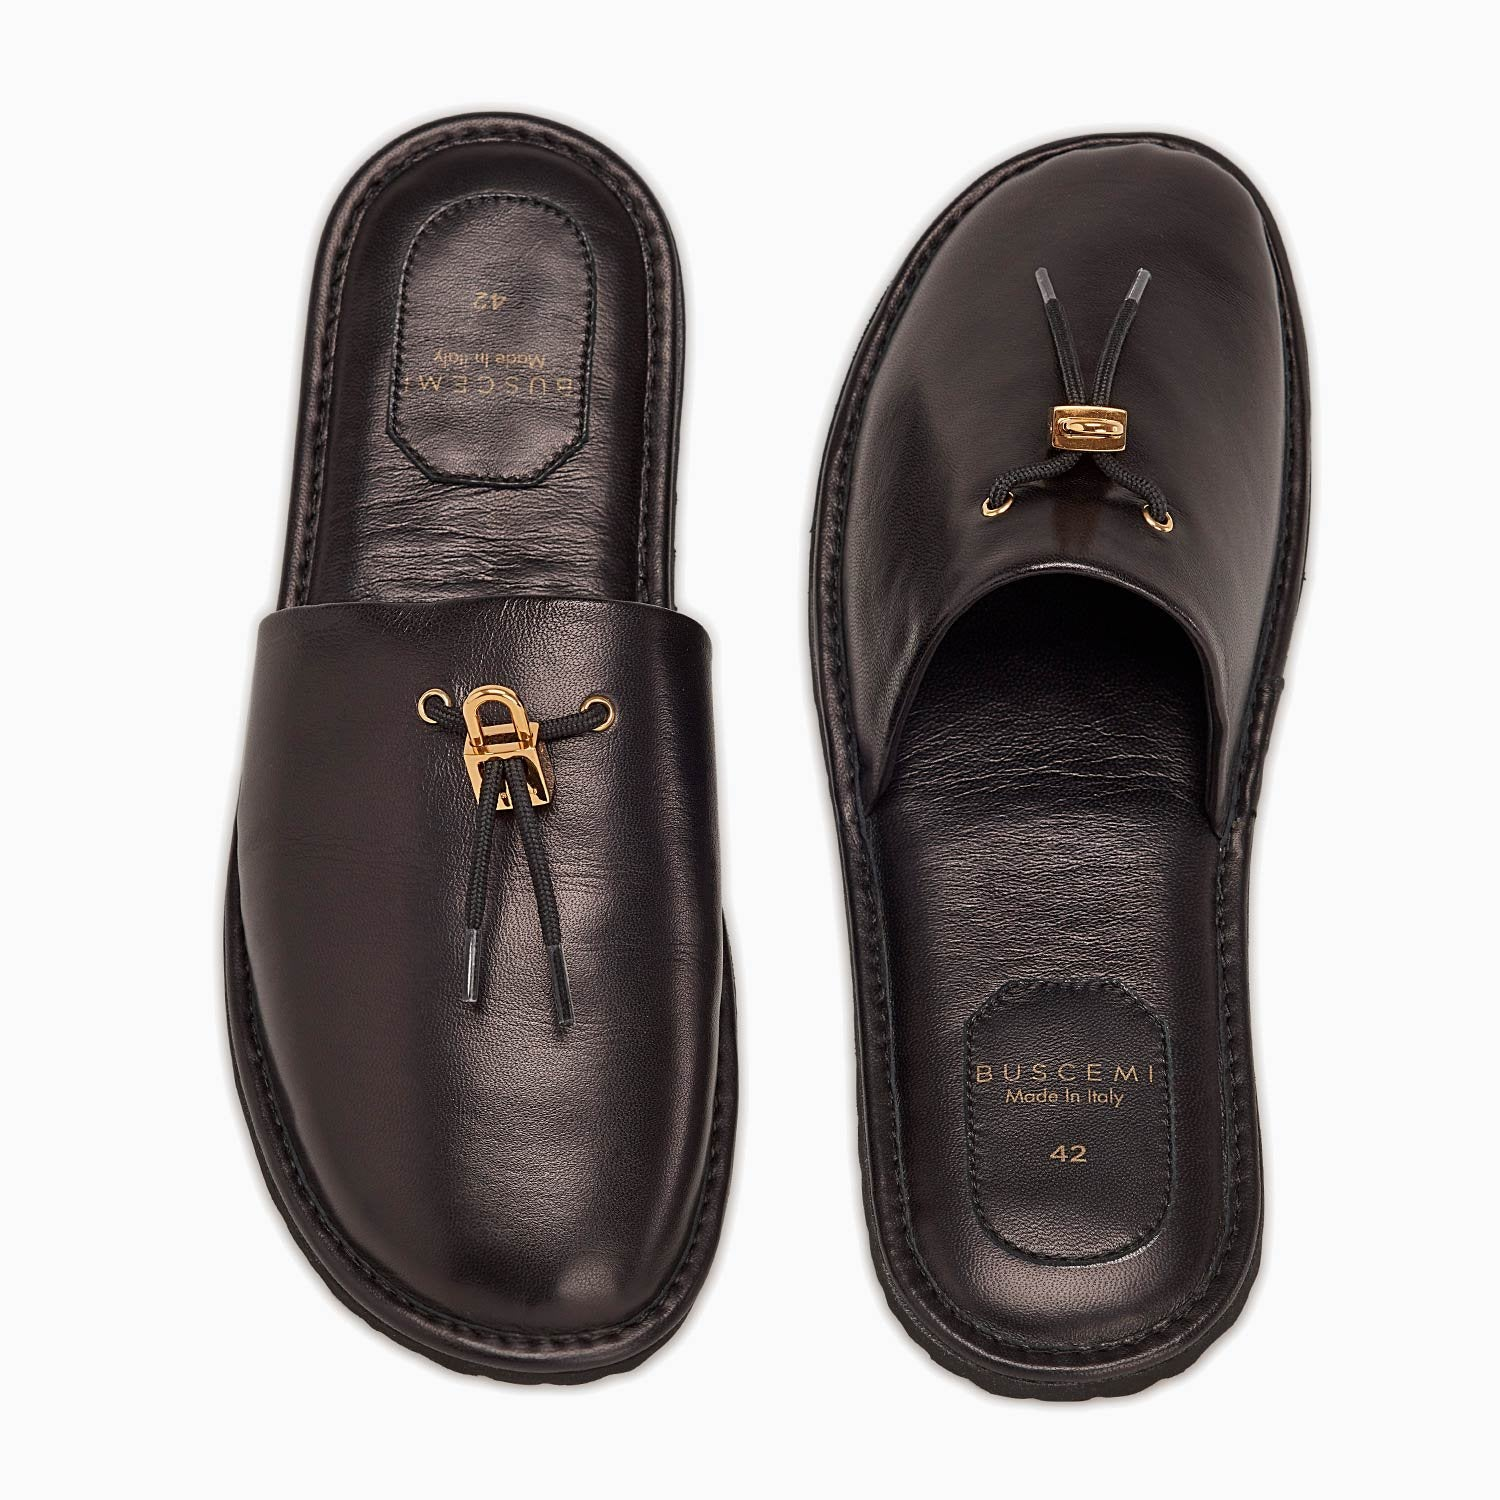 Greenwich | Black-Buscemi